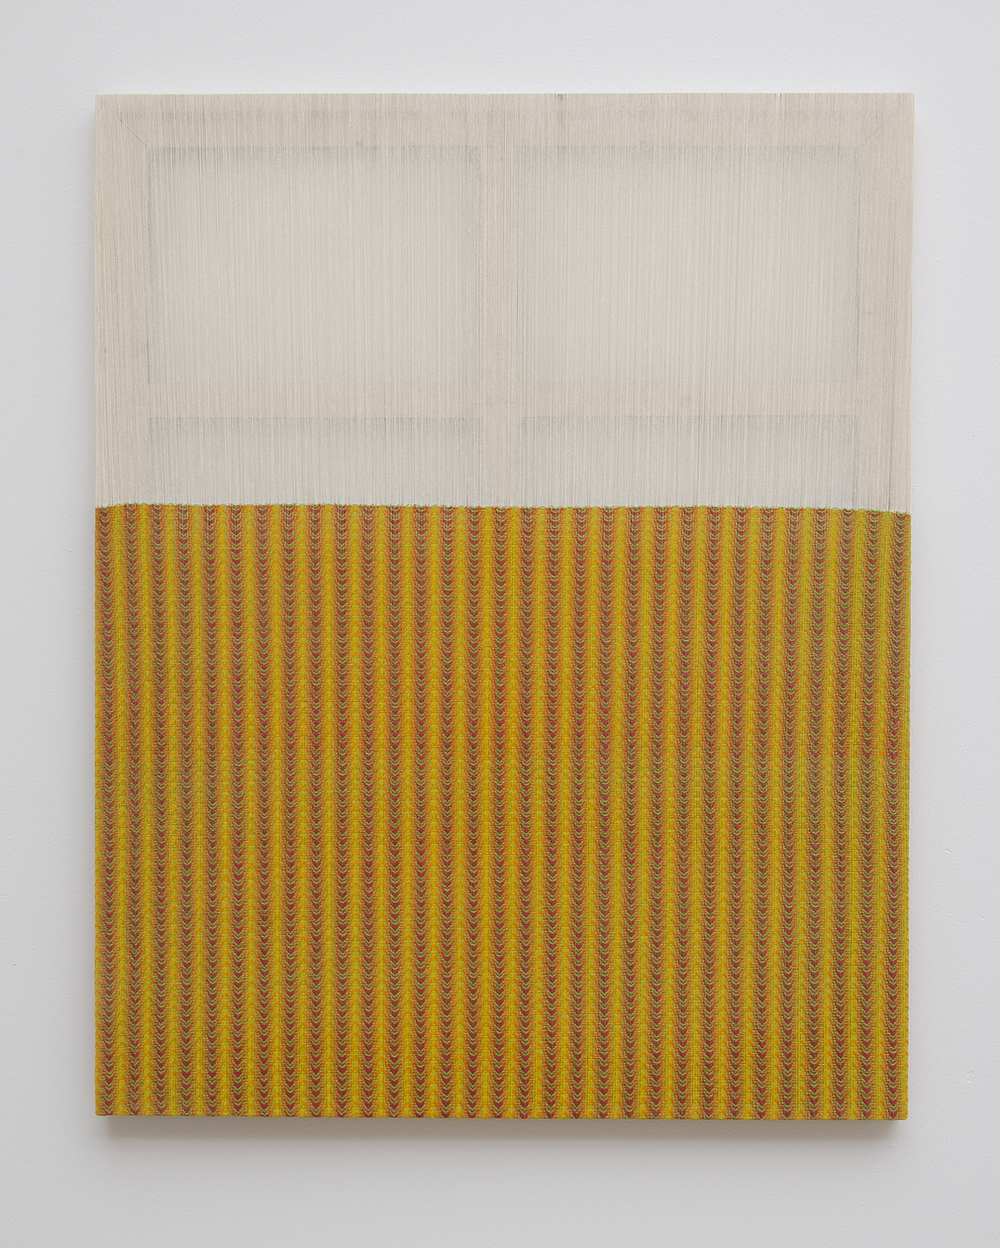 Untitled, 2011, deconstructed, hand-painted and woven canvas, pine, acrylic, wood joiners, 49 x 39in